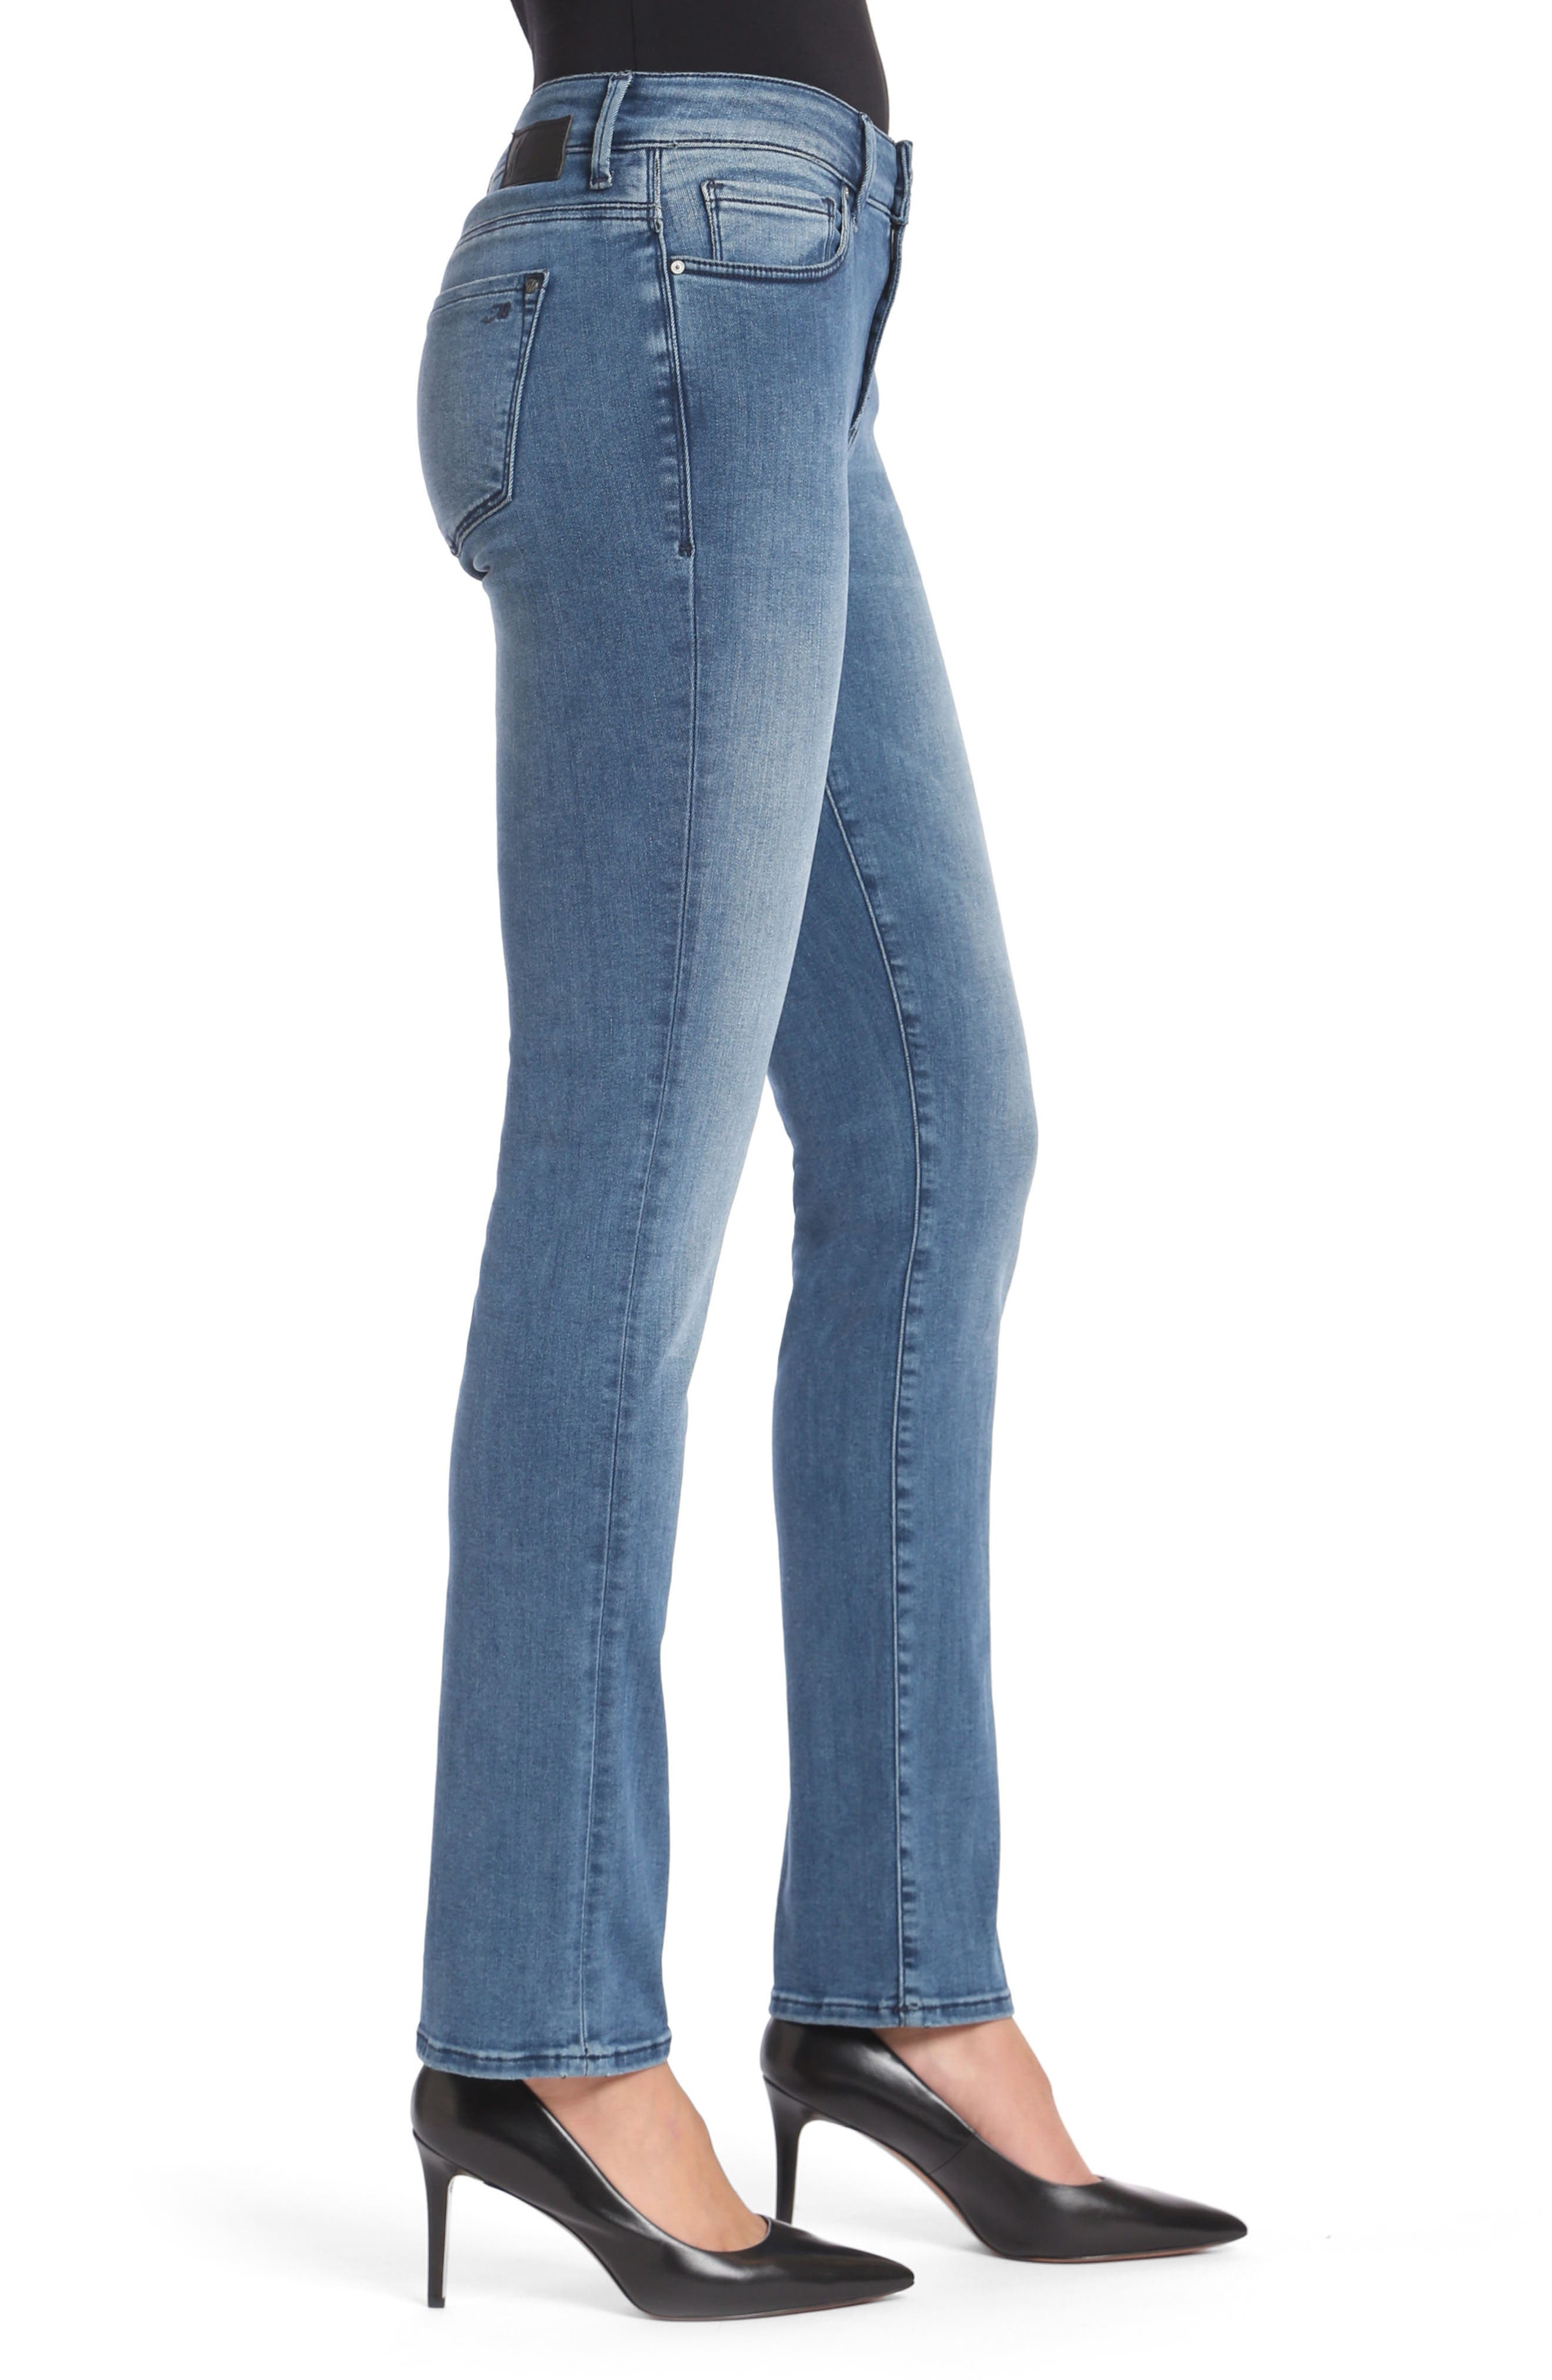 Kendra High Waist Straight Leg Jeans,                             Alternate thumbnail 3, color,                             Light Foggy Blue Tribeca